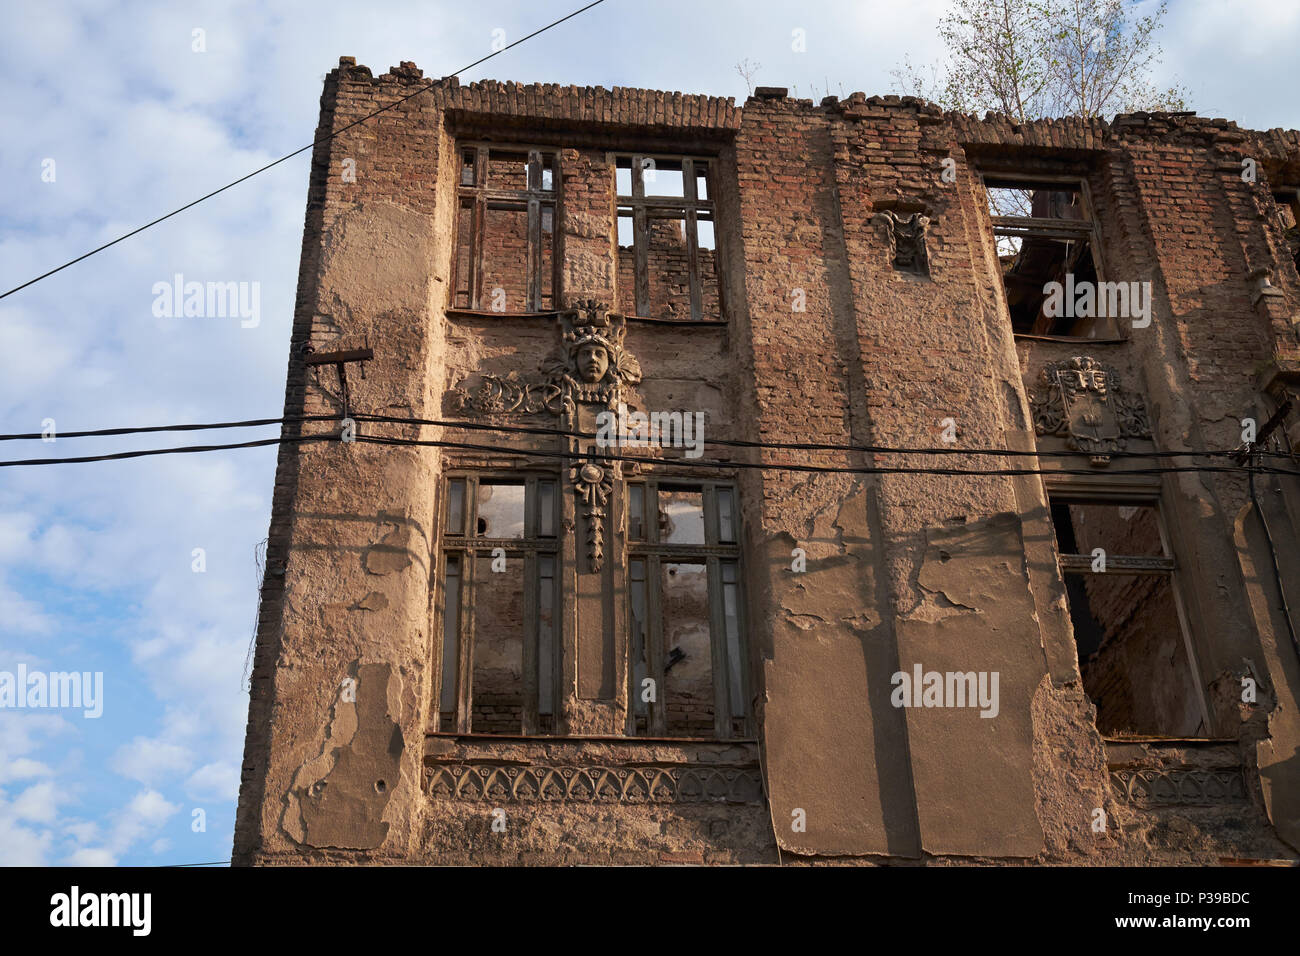 Building damaged during the siege of Sarajevo, Bosnia and Herzegovina, Europe. Like many others. it's the subject of a long-running ownership dispute. - Stock Image